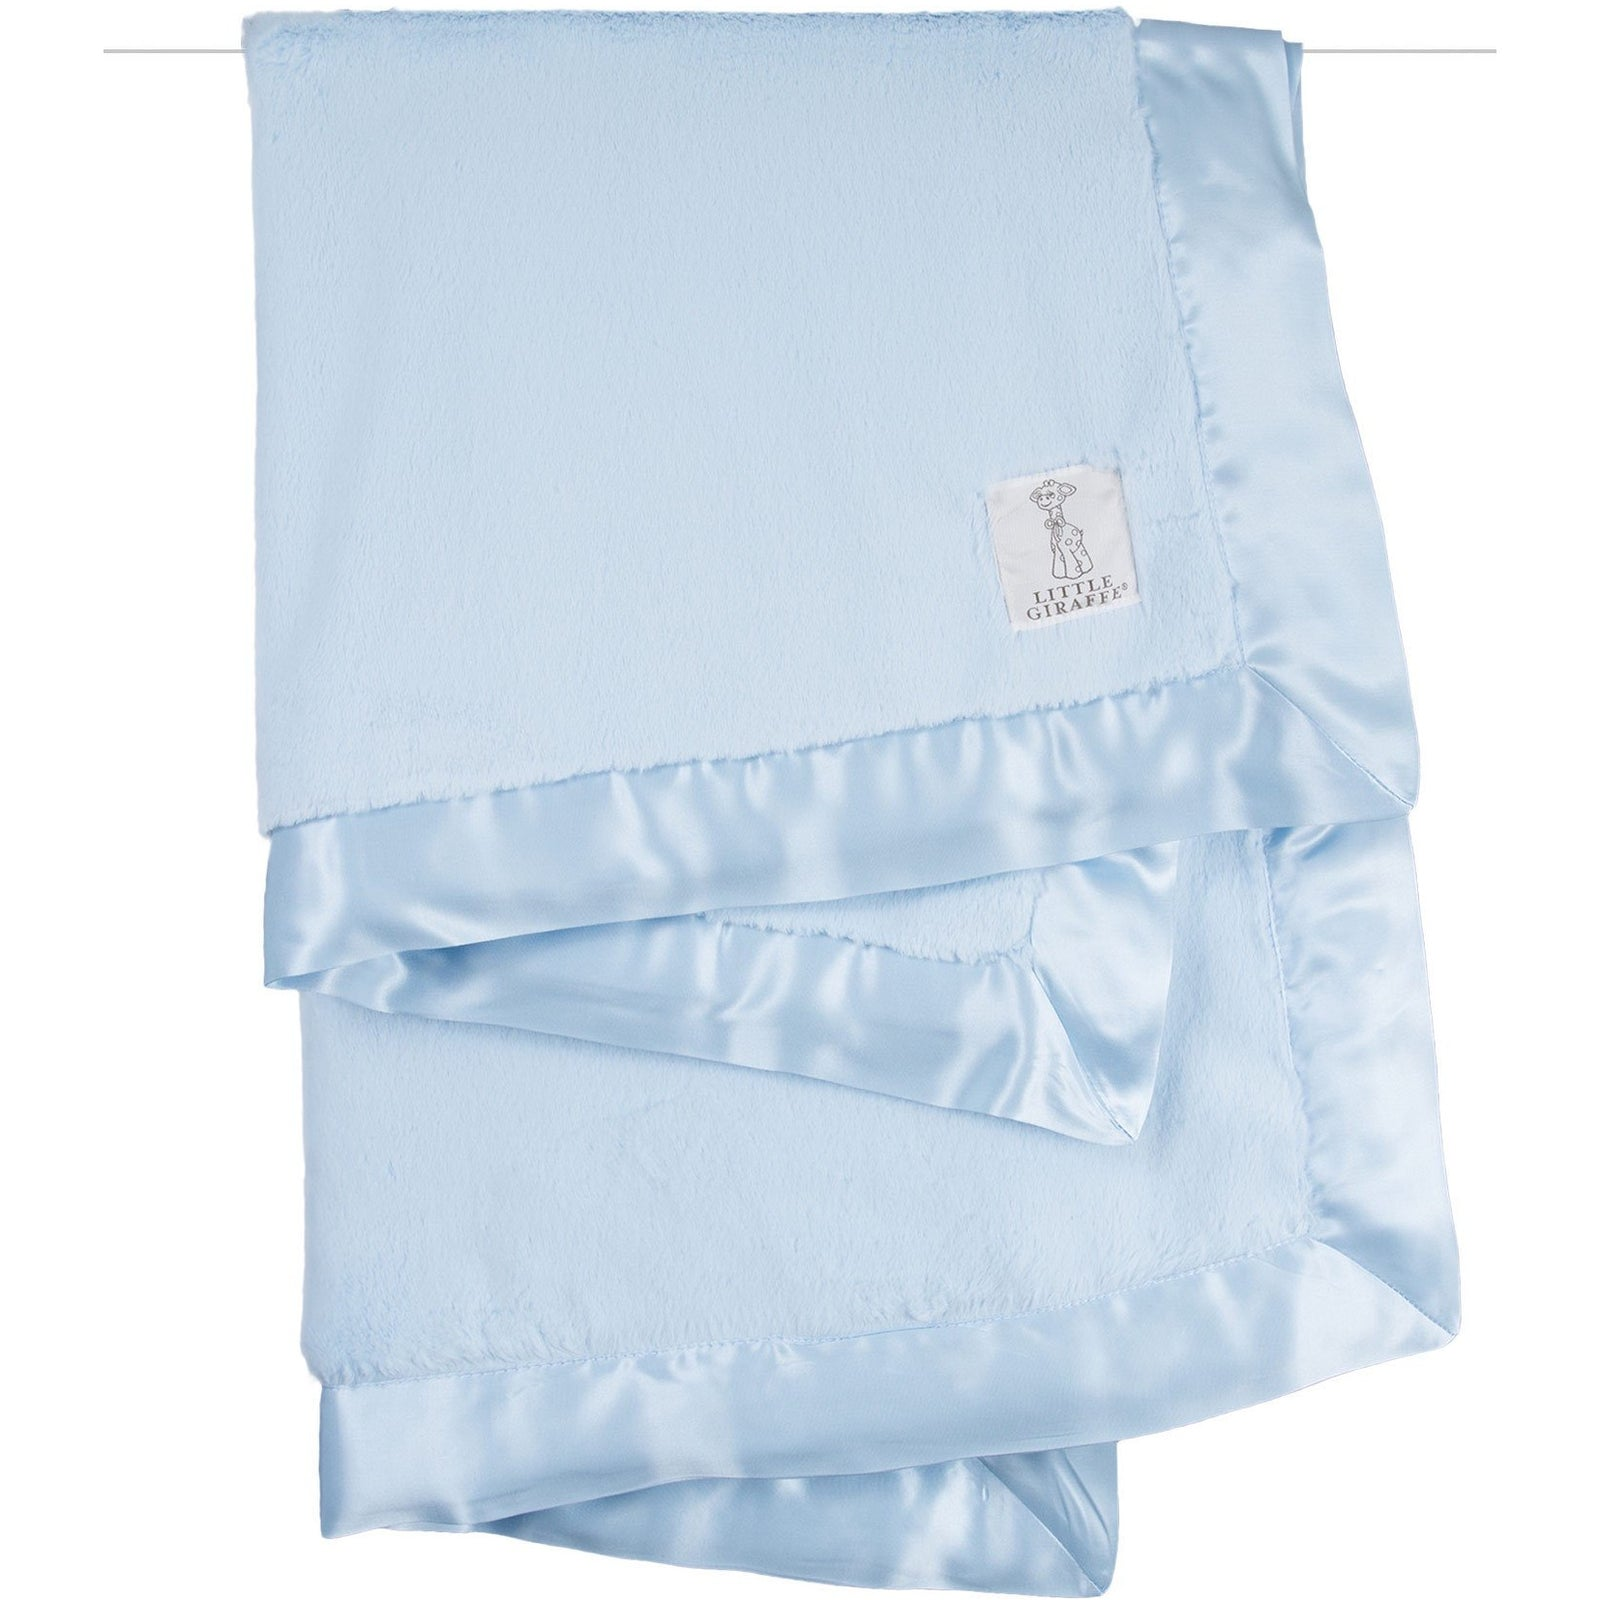 Luxe Blanket - Blue